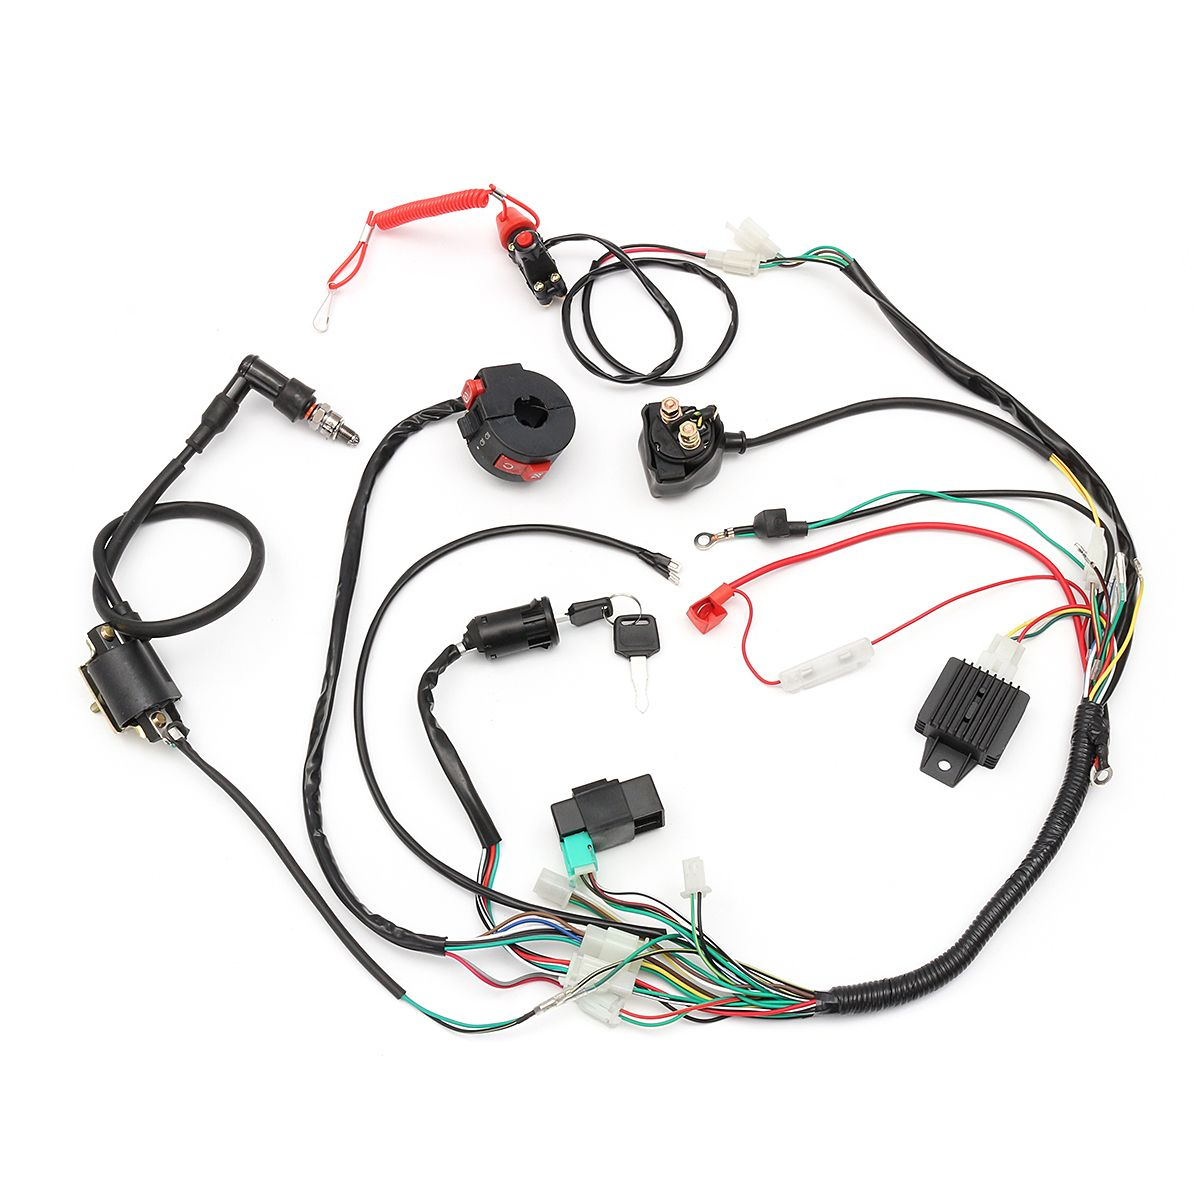 876c6a8072d74d2cd632995c90552f62 wiring harness loom solenoid coil rectifier cdi 50cc 70cc 110cc  at gsmx.co